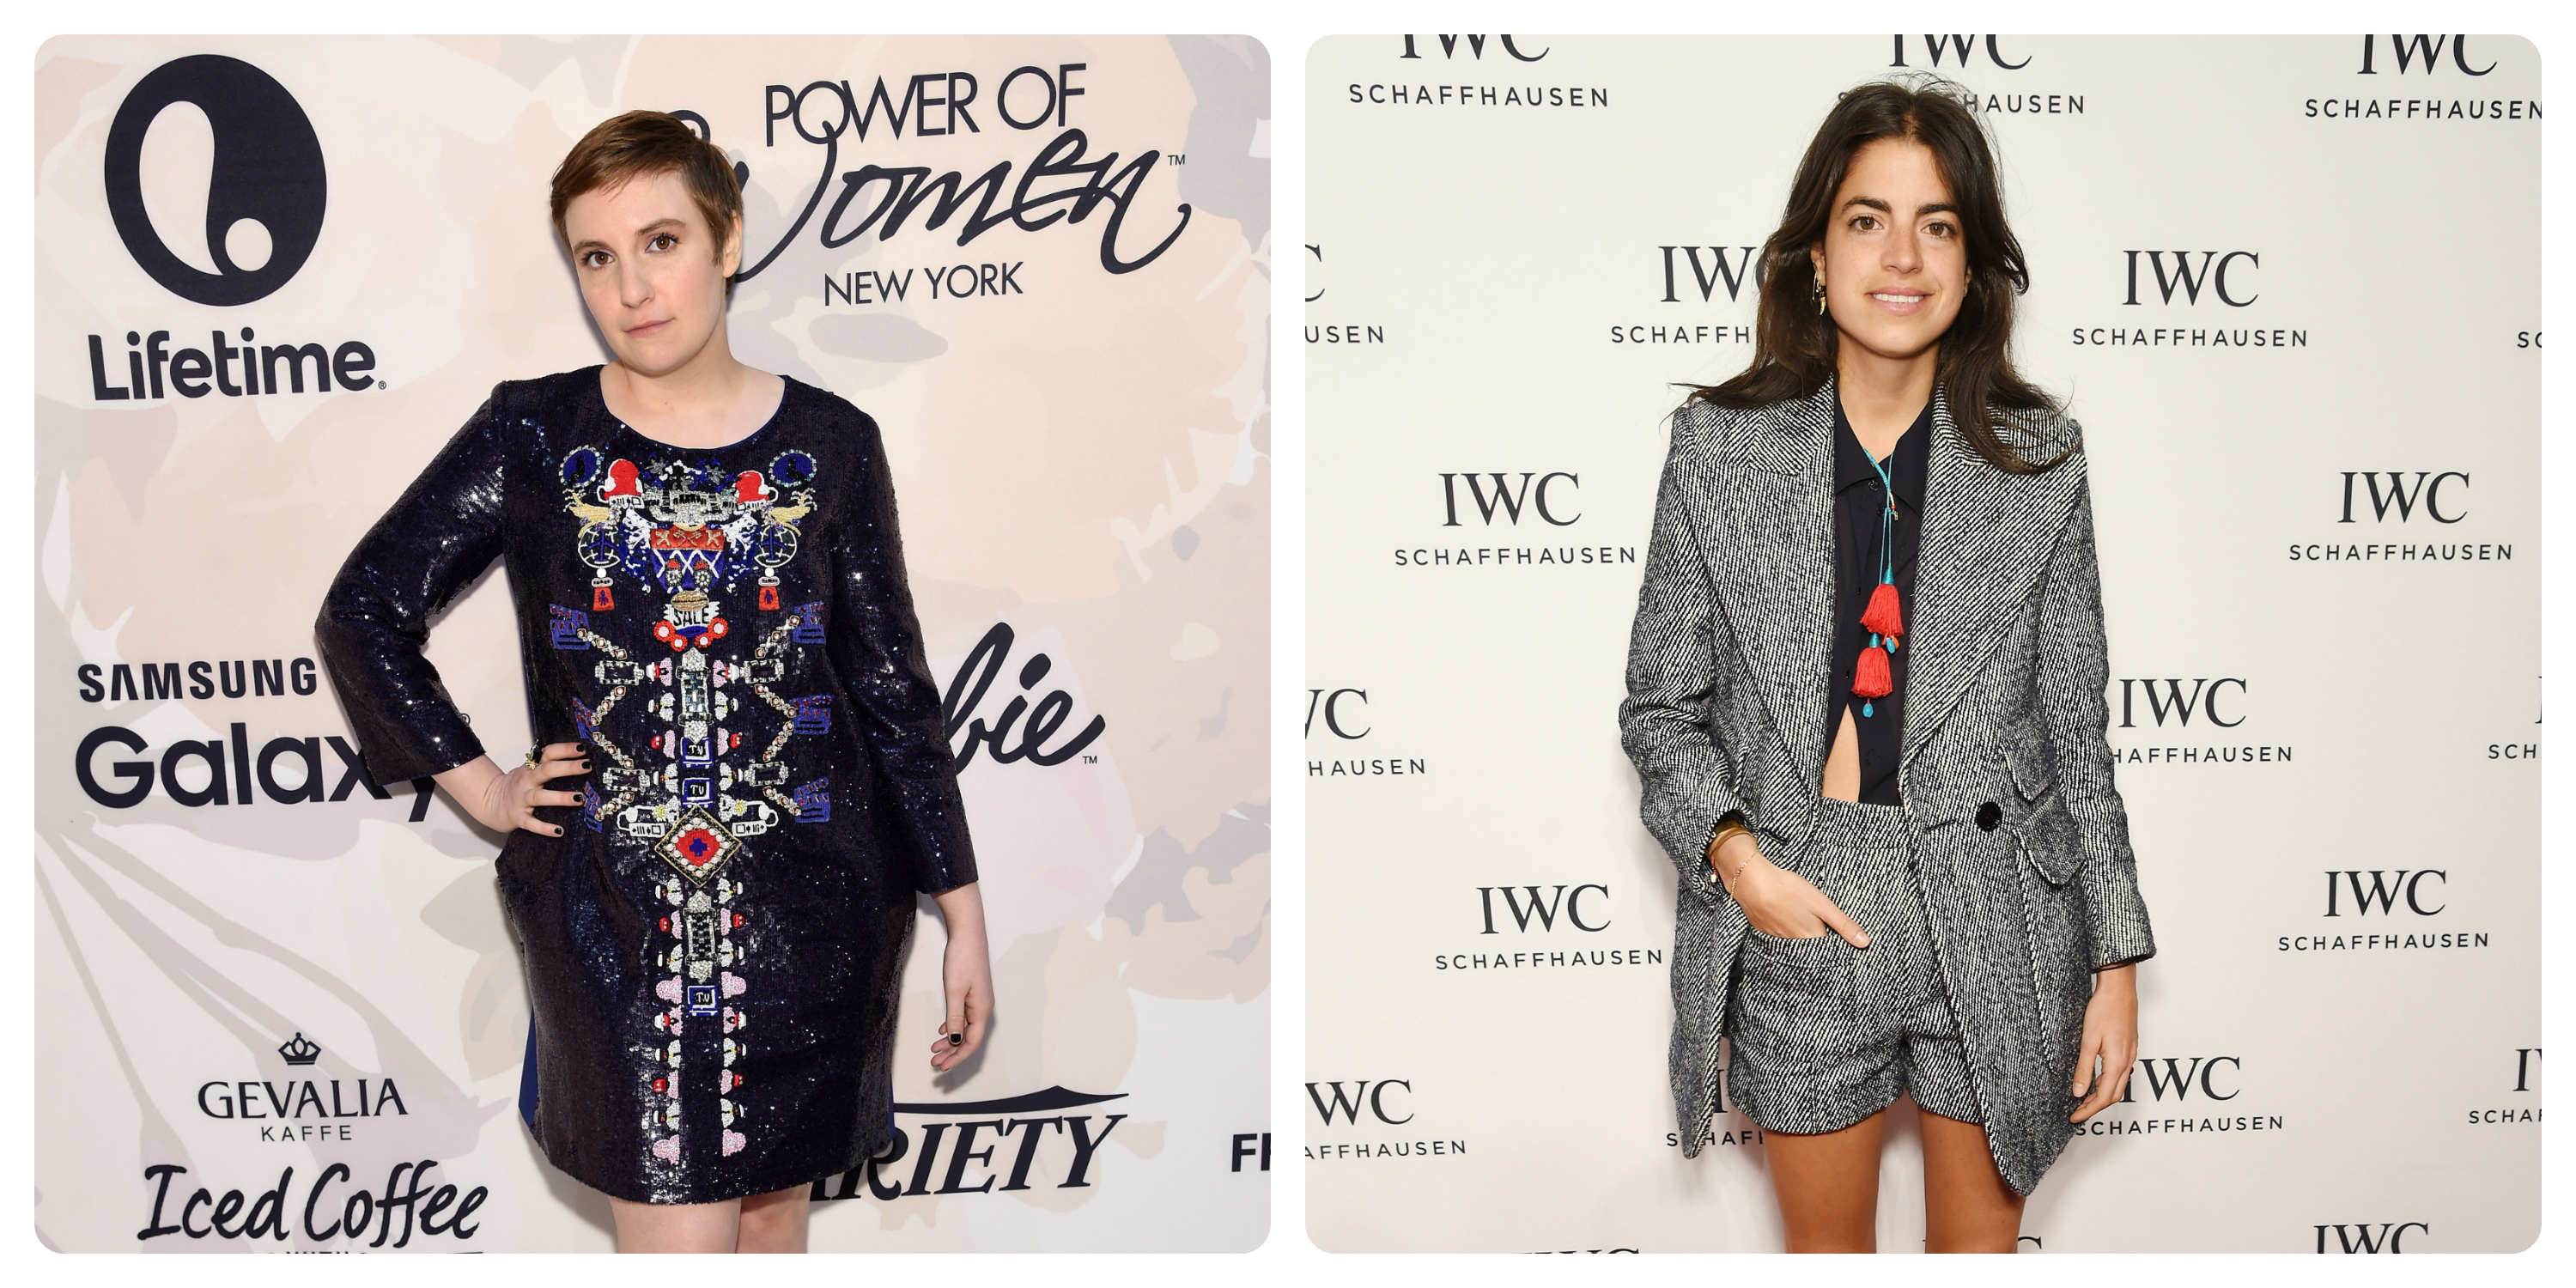 Lena Dunham (left) and Leandra Medine (right)